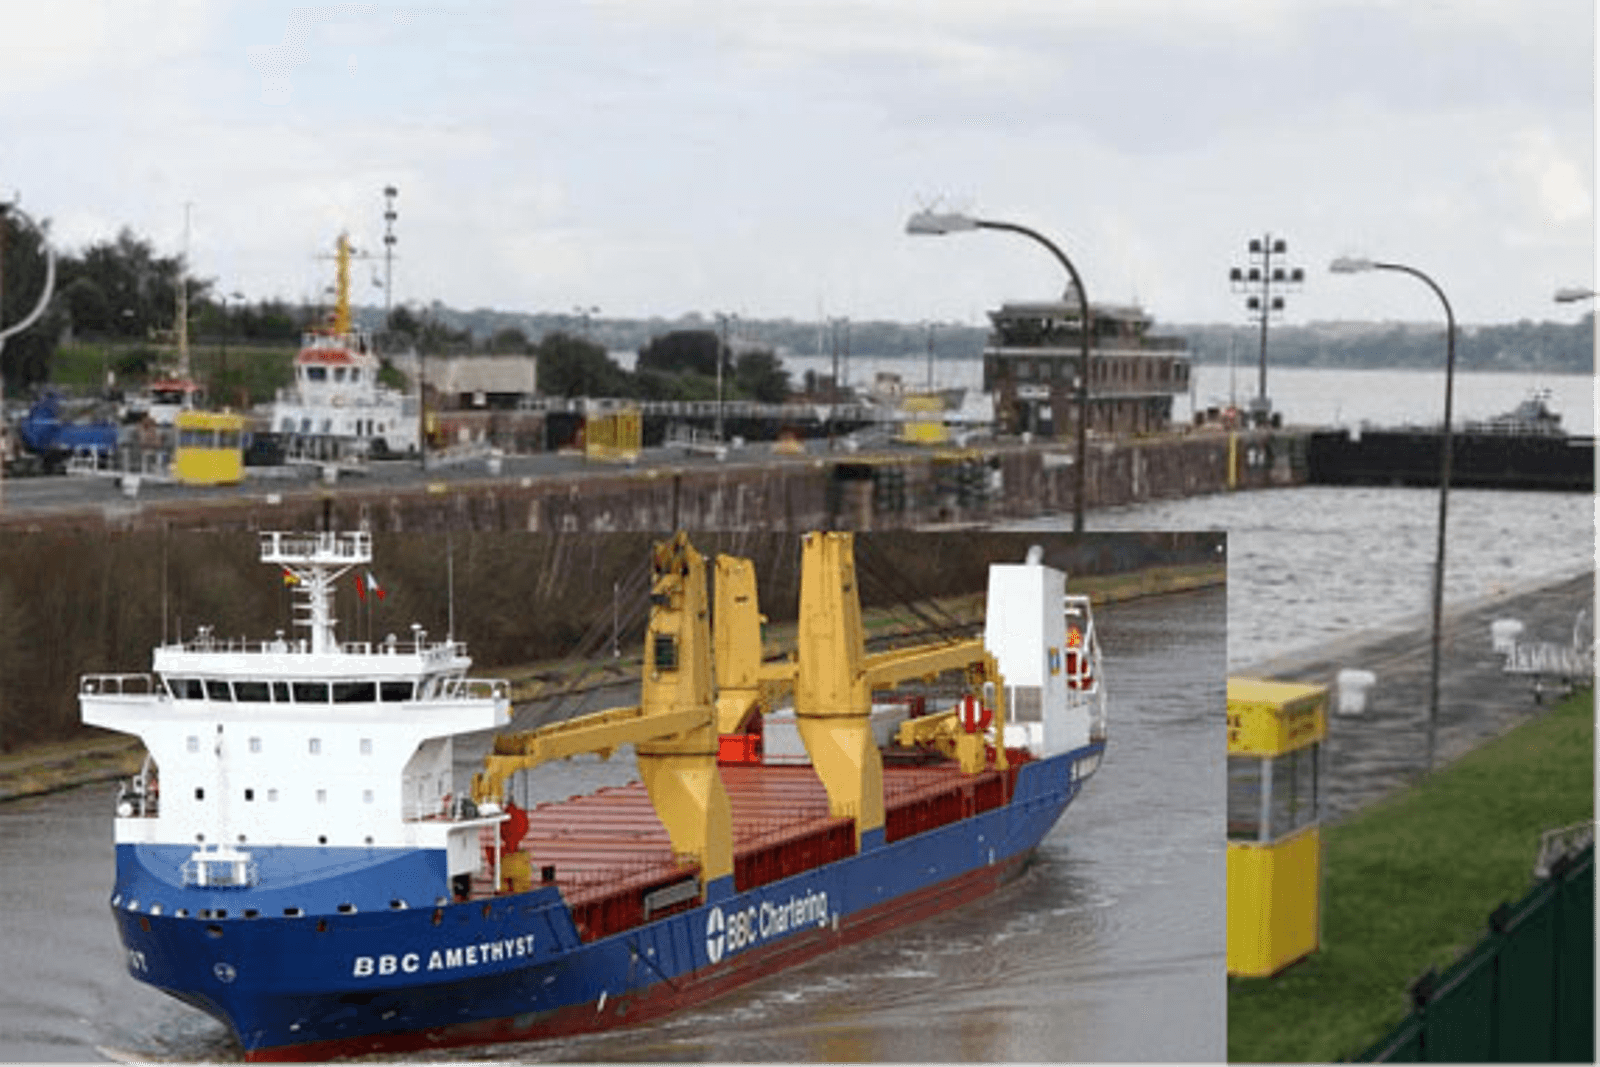 German freighter collided with Lock's control center, Kiel